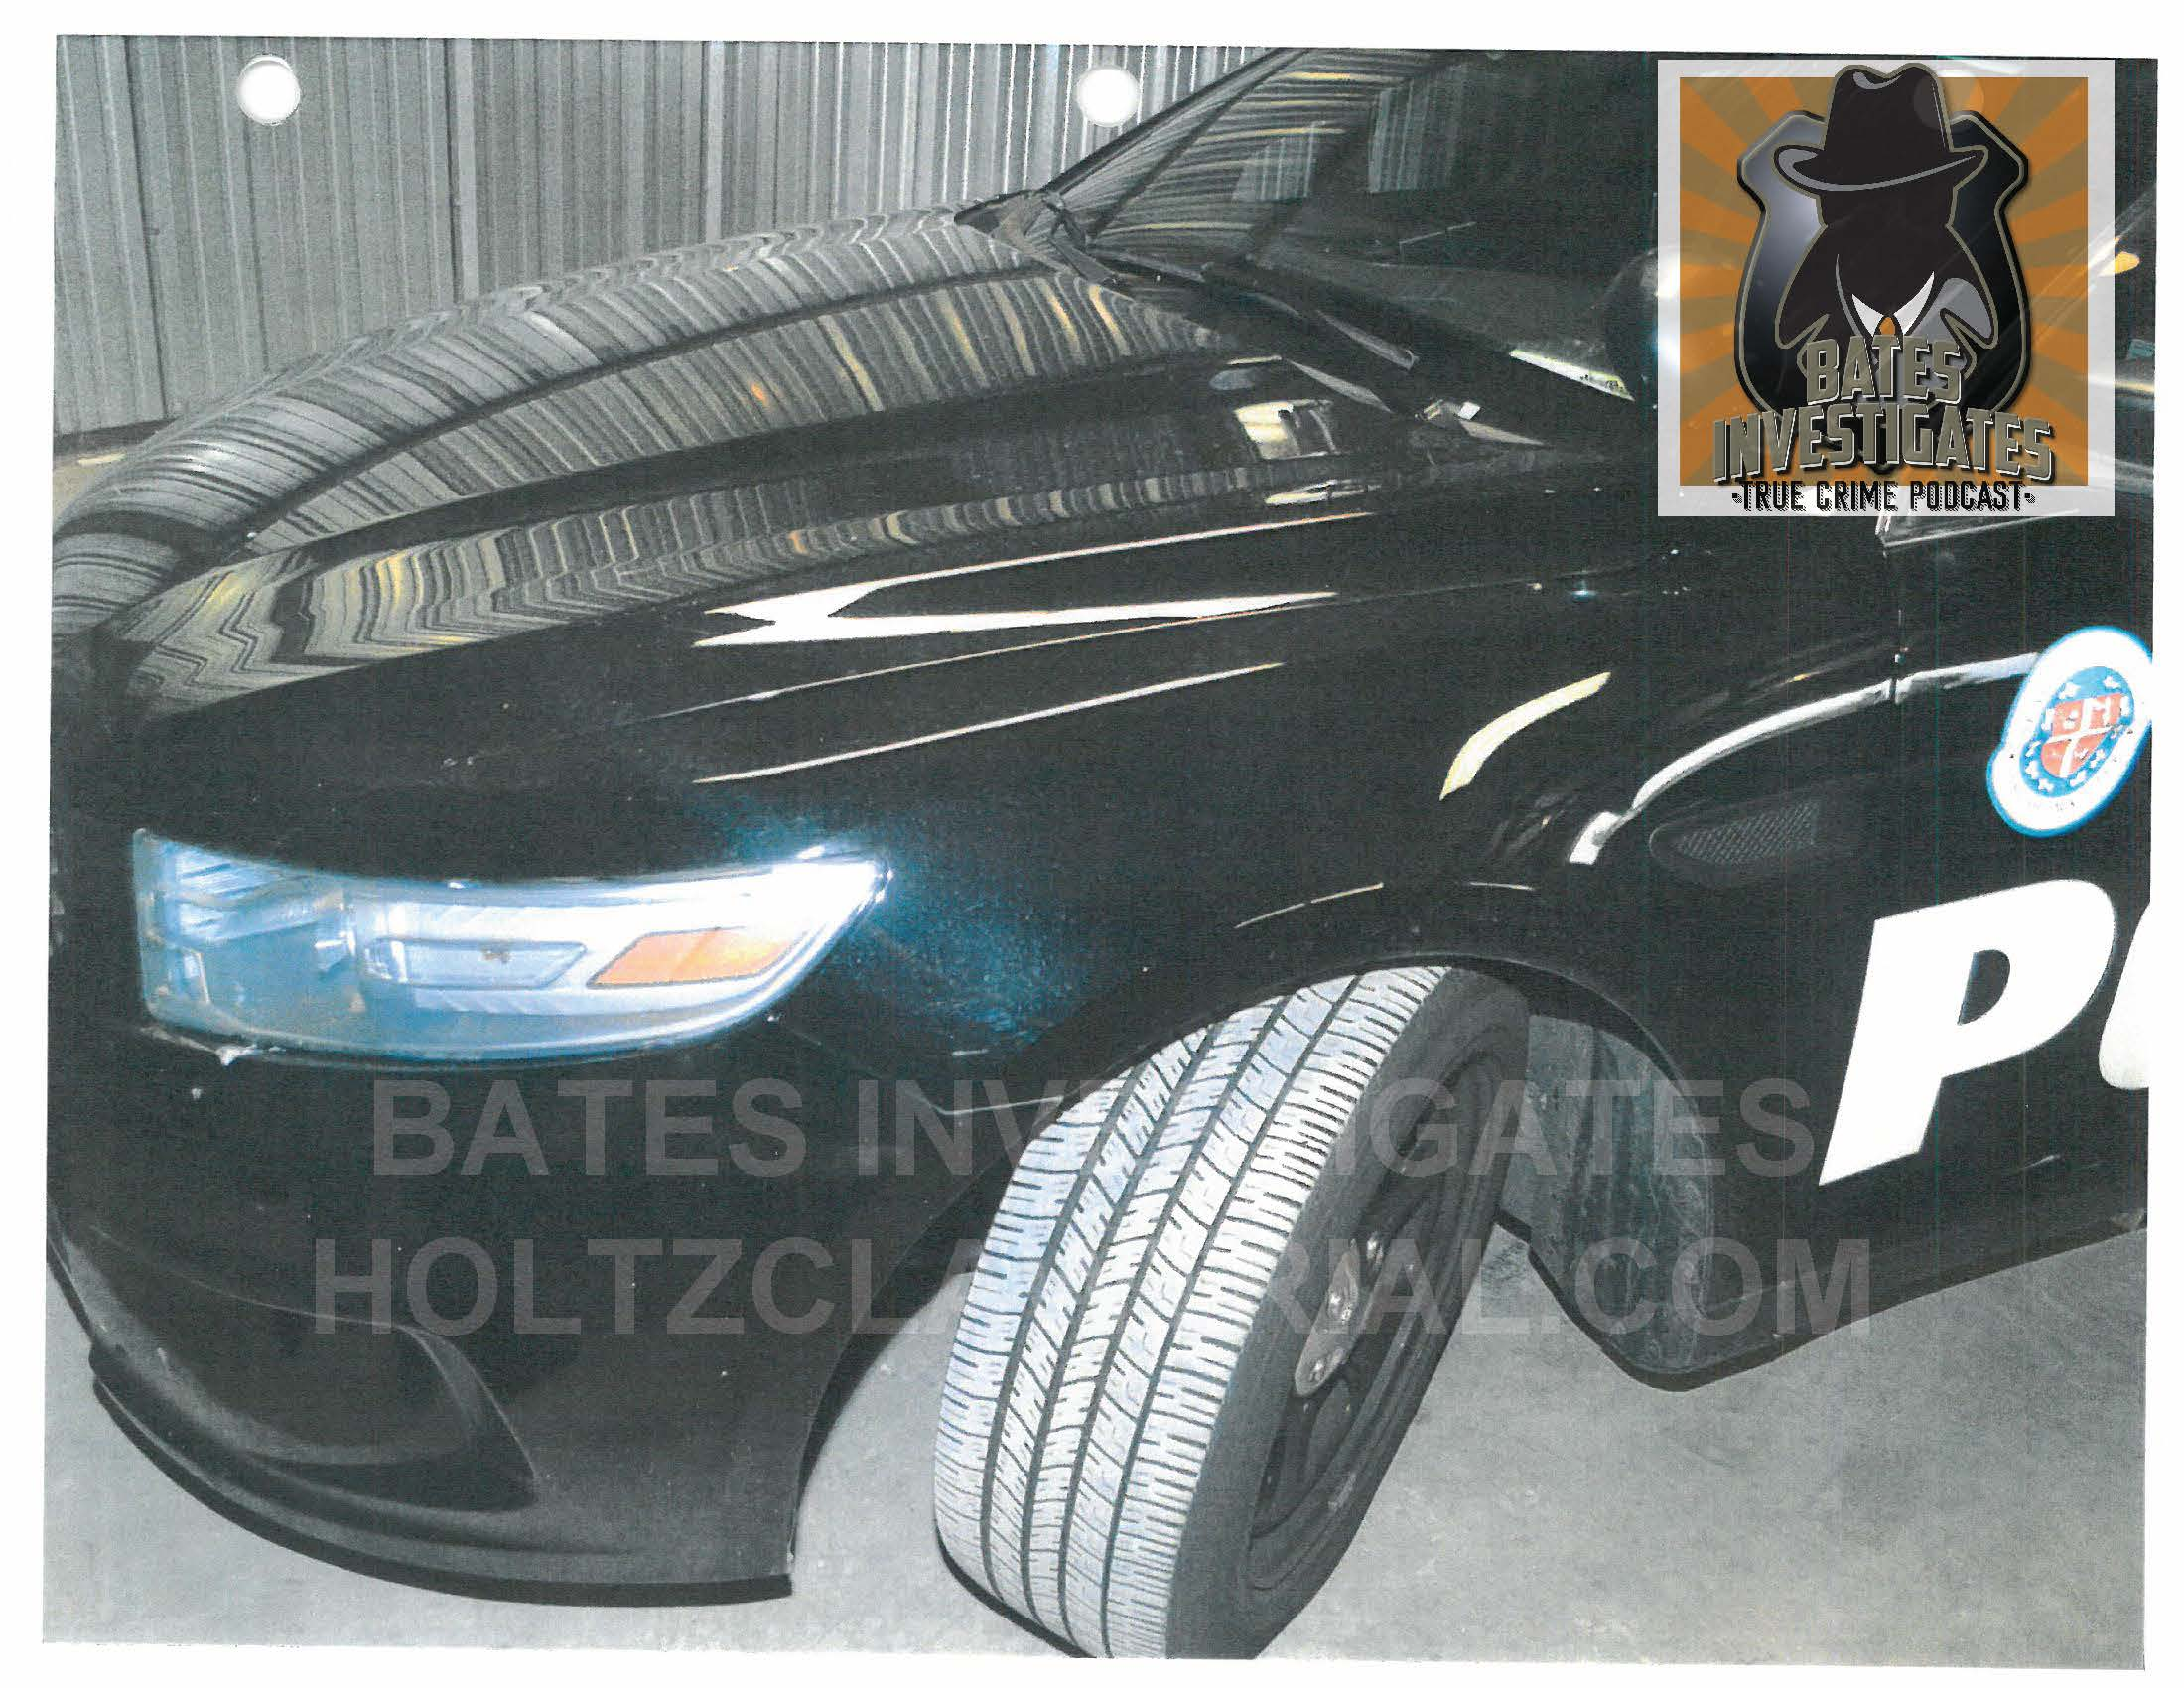 Holtzclaw Daniel - OCPD Patrol Car Photos Watermarked_Page_05.jpg